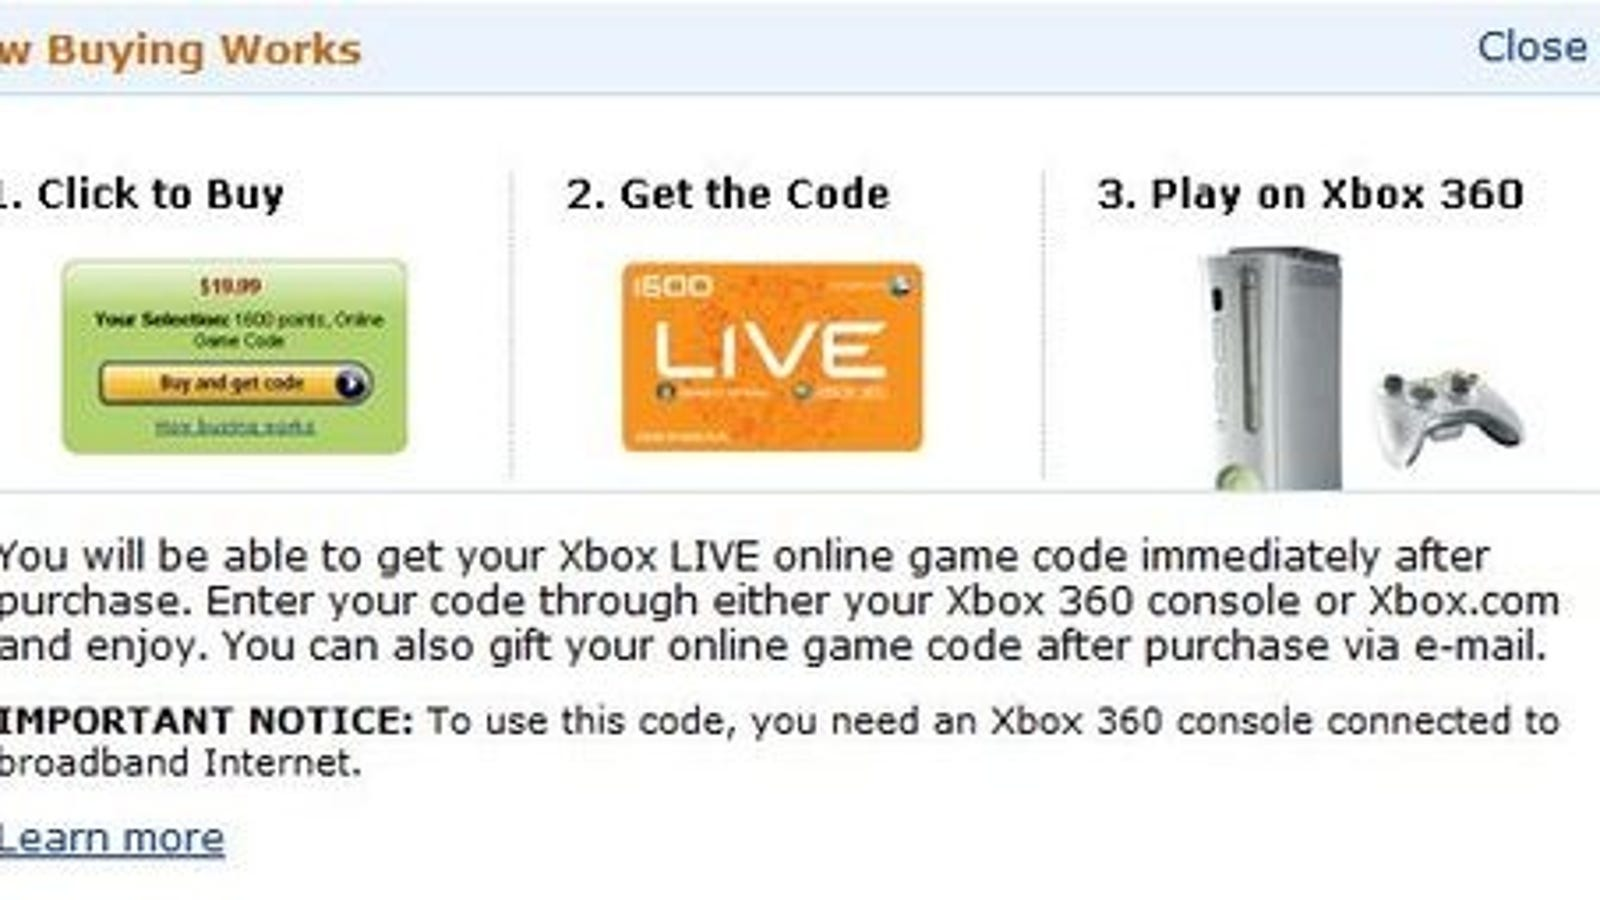 Amazon Selling Xbox 360 Digital Games, Wii, PS3 Incoming?